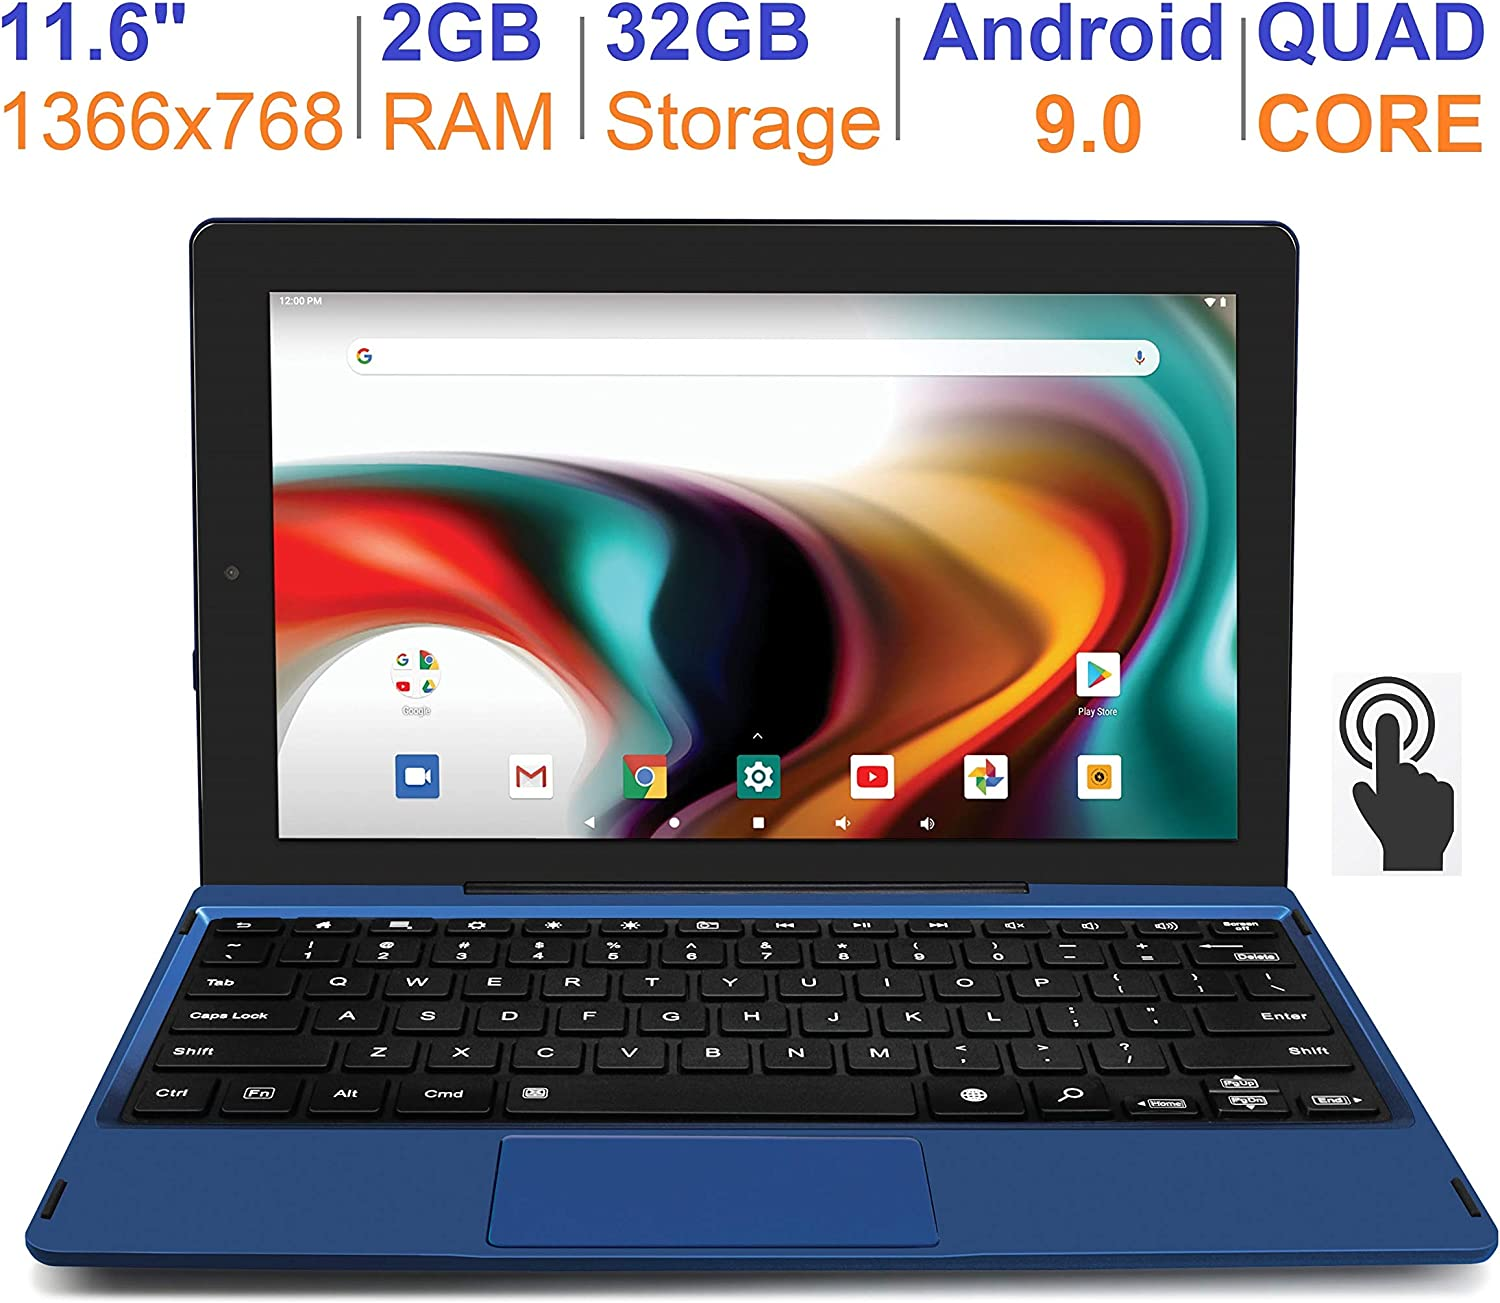 "RCA 11 Delta Pro 11.6 Inch Quad-Core 2GB RAM 32GB Storage IPS 1366 x 768 Touchscreen WiFi Bluetooth with Detachable Keyboard Android 9.0 Tablet (11.6"", Blue)"